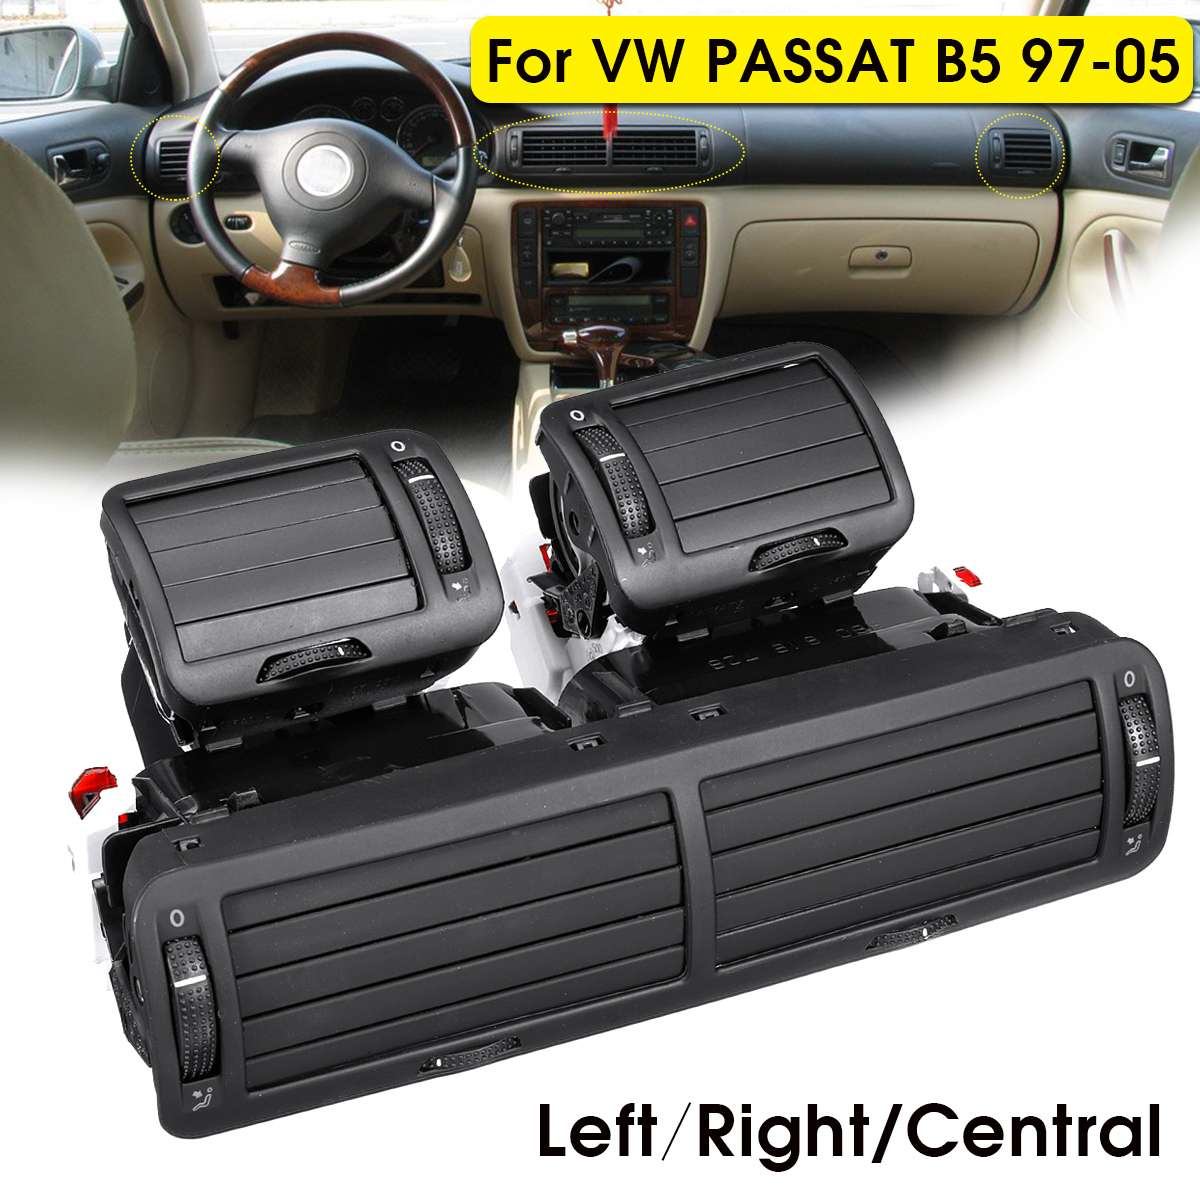 Front Dashboard Left/Right/Central Air Vent Outlet A/C Heater For VW Passat B5 1997 1998 1999 2000 2001 2002 2003 2004 2005